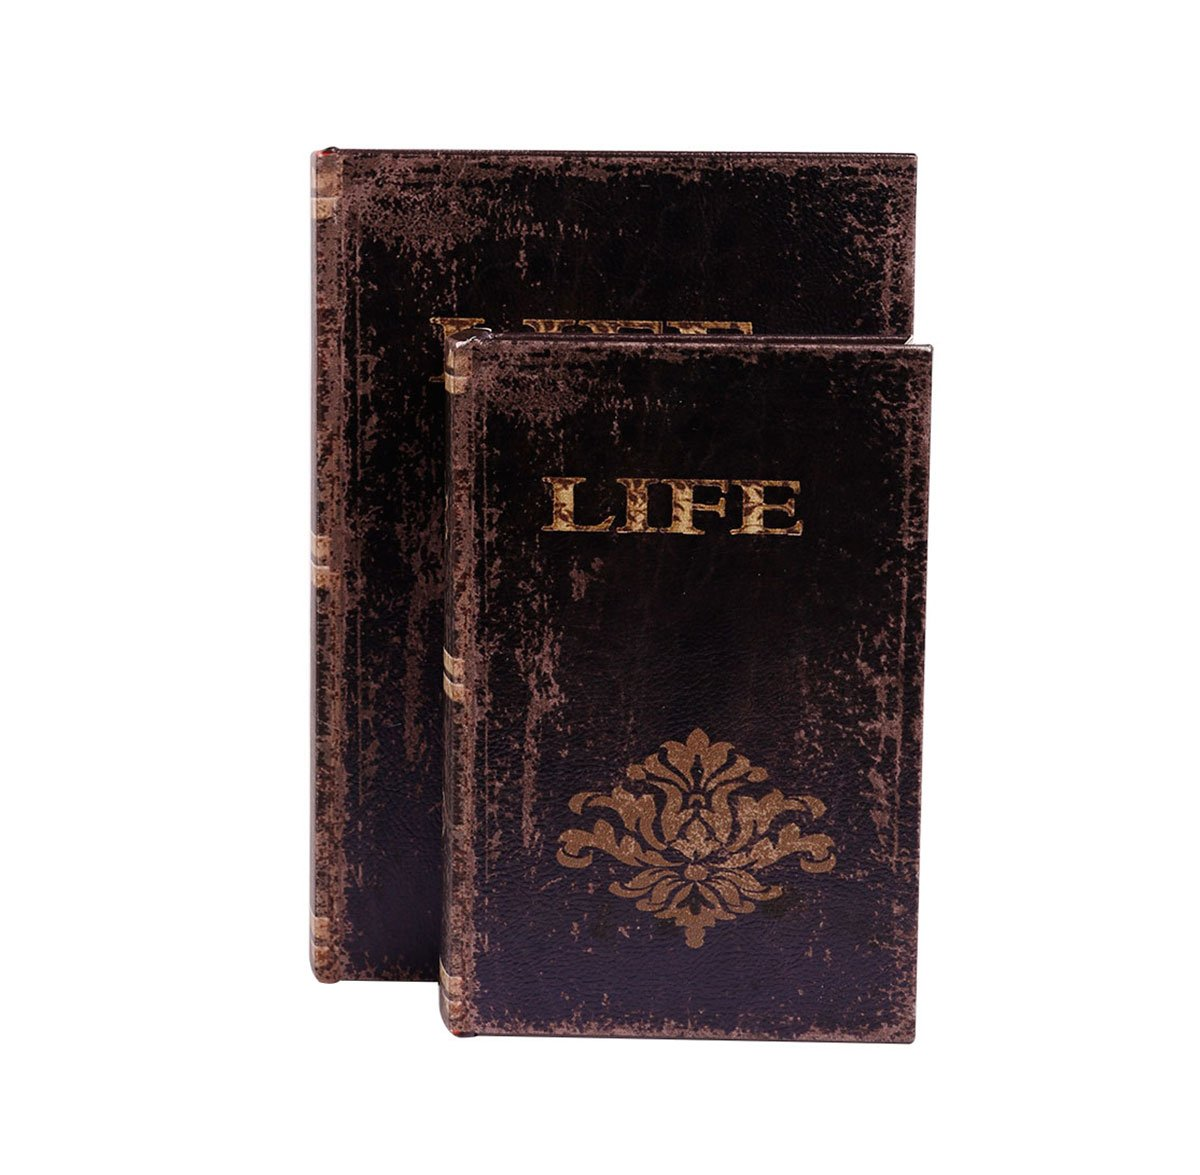 WaaHome Faux Book Box Antique Wooden Leather Jewelry Keepsake Boxes Set with Floral Decoration,Set of 2